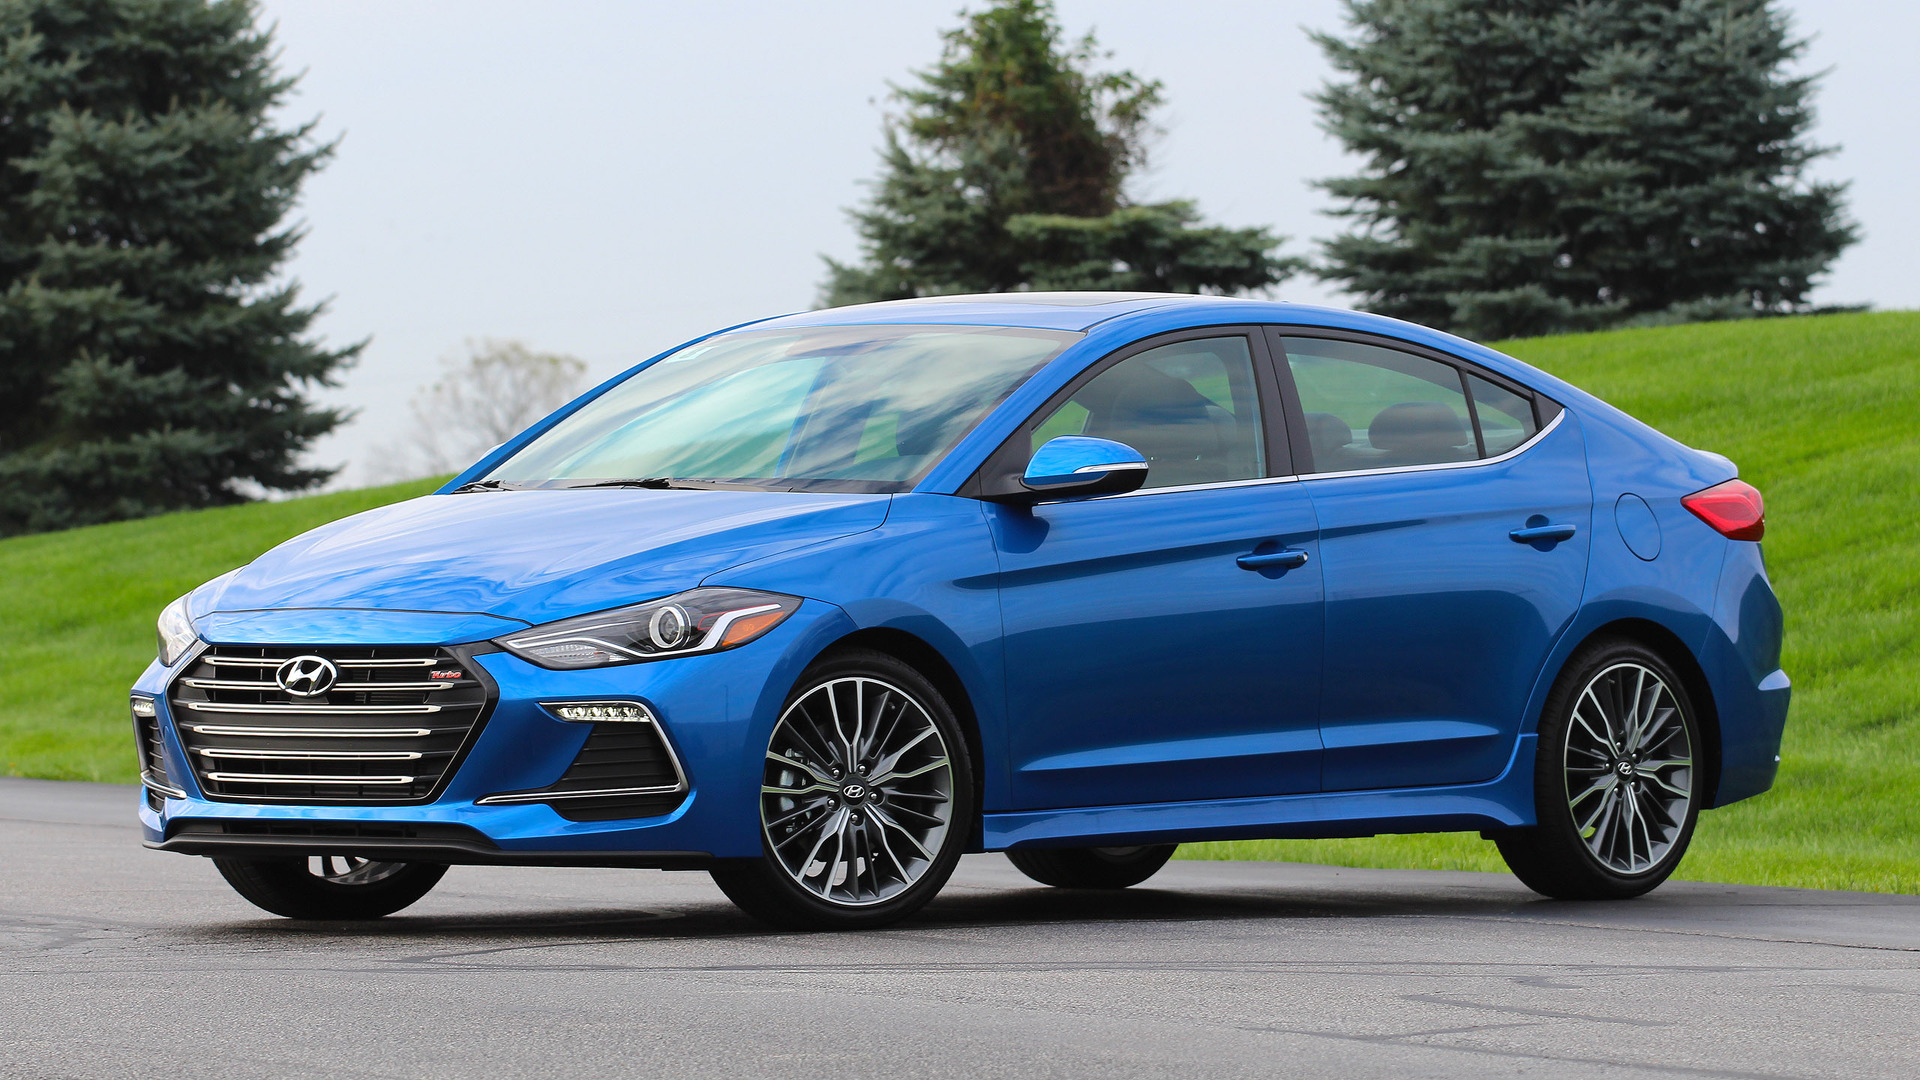 hyundai and auto cars specification new elantra accessories review